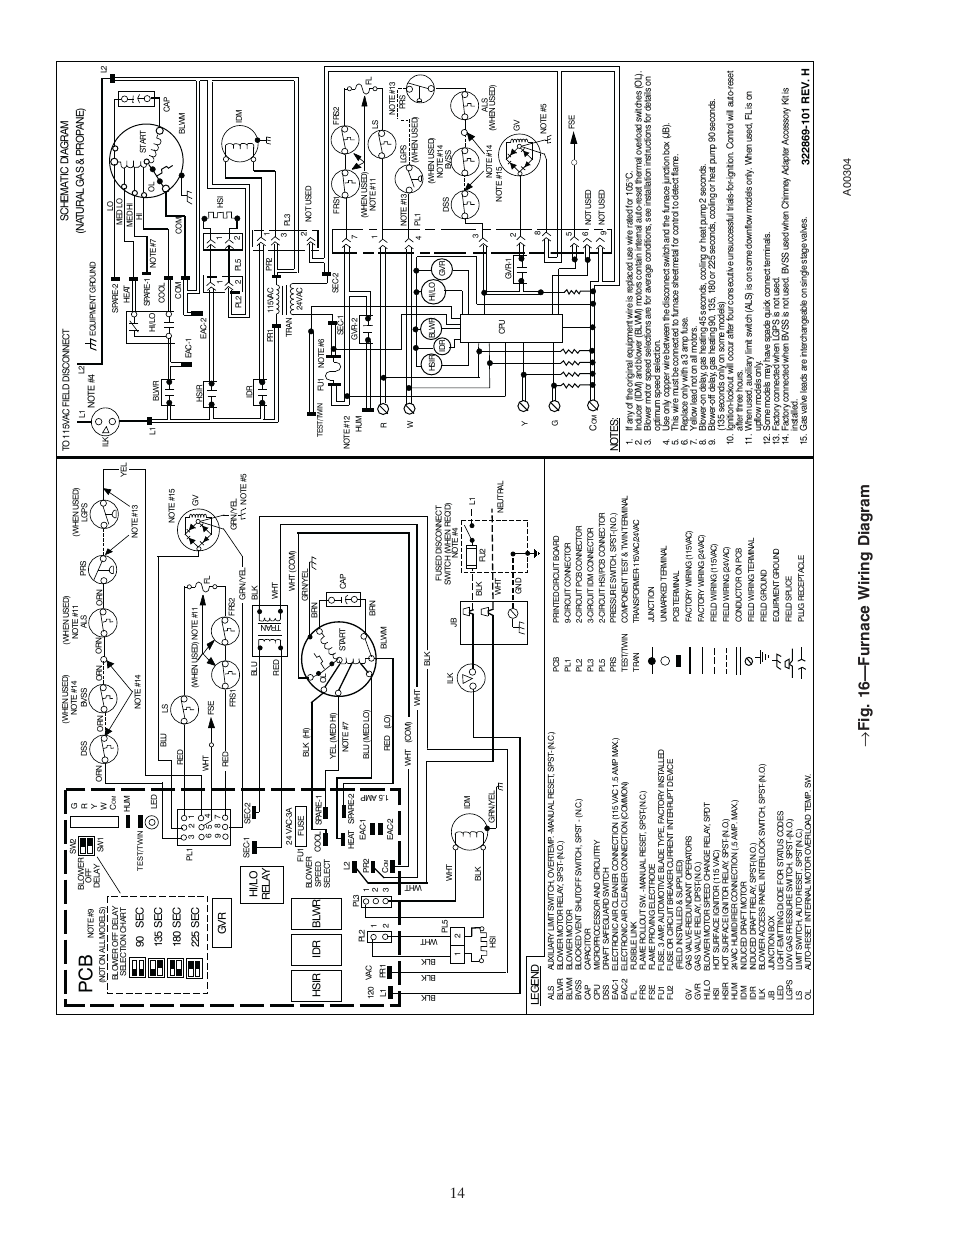 2003 kenworth t800 wiring diagram